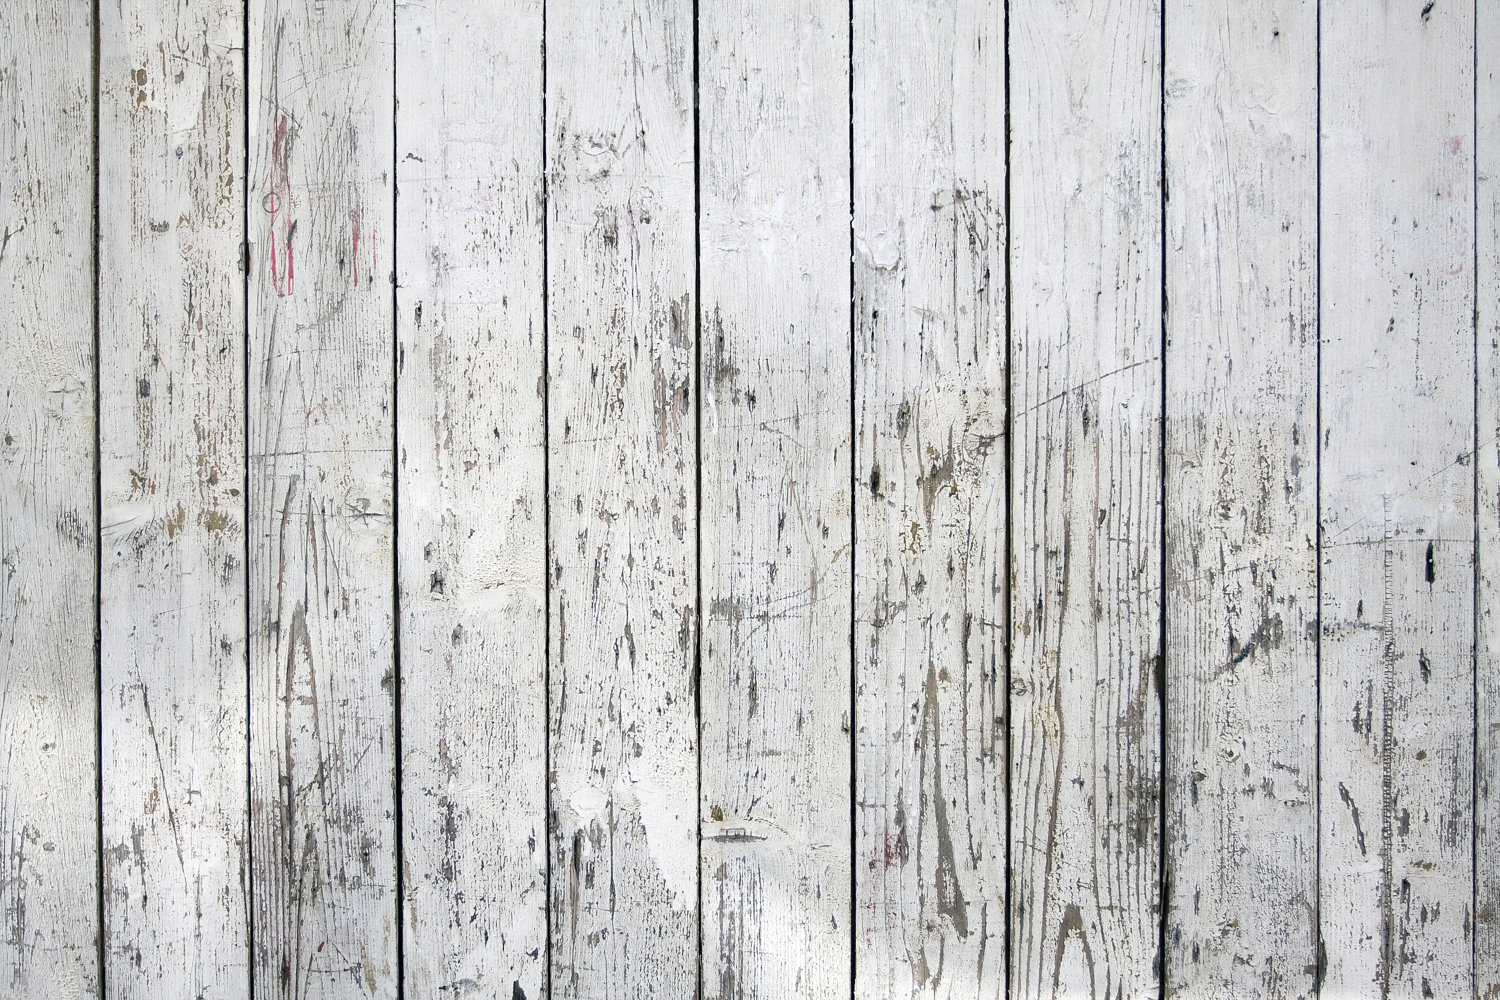 Wood Wall Paper white wash wood wallpaper - wallpapersafari